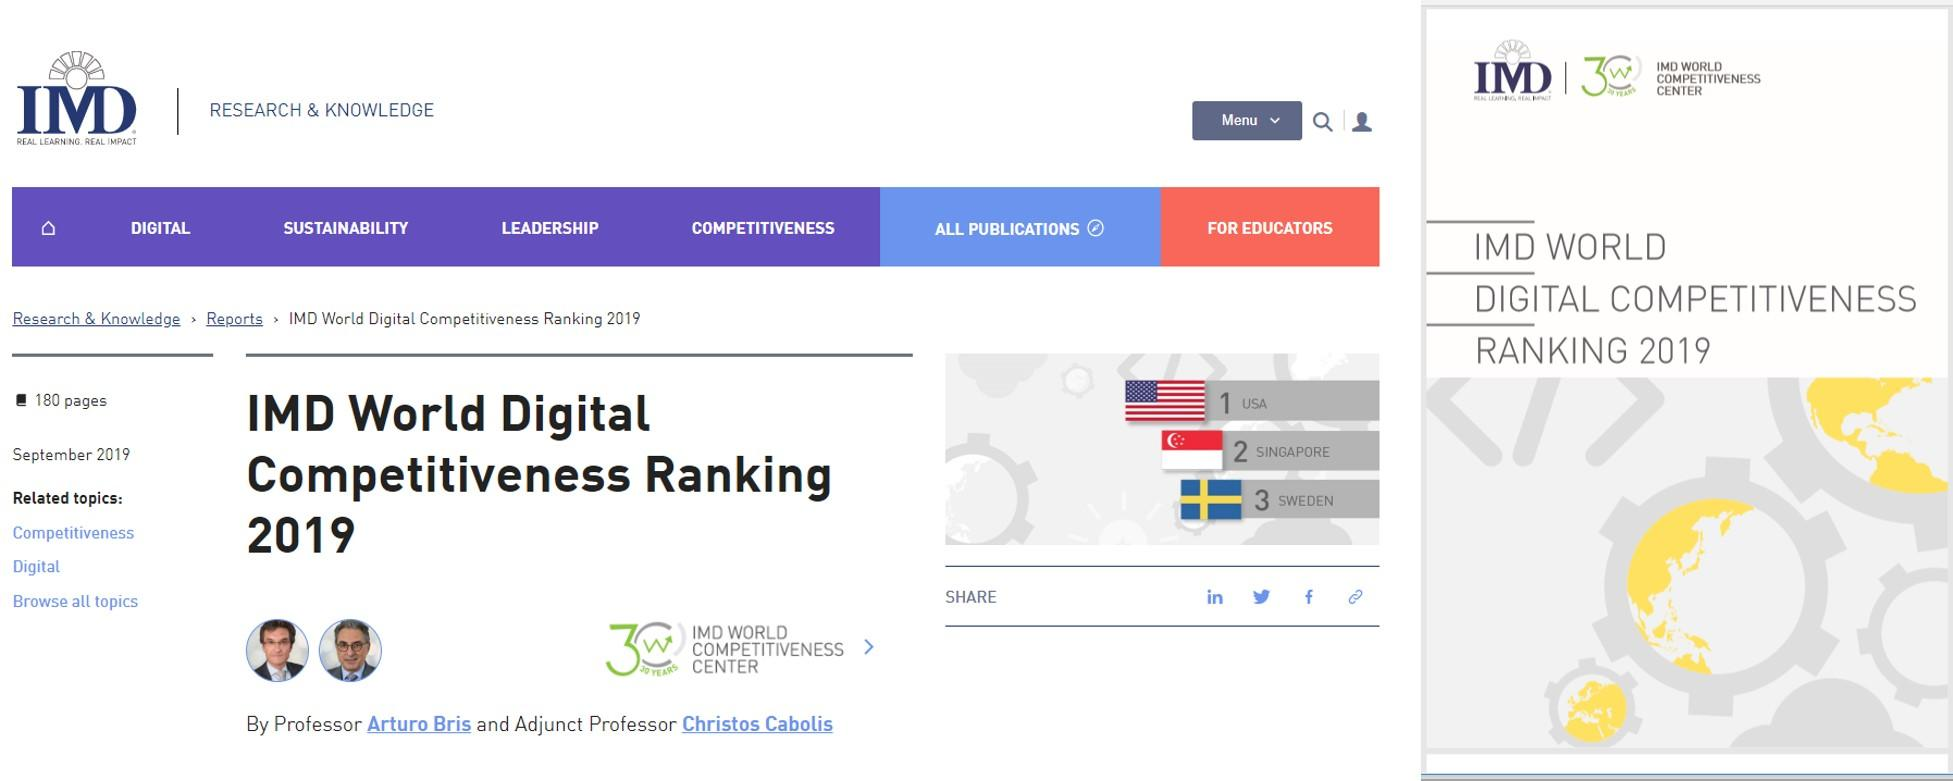 IMD World Digital Competitiveness Ranking 2019.jpg